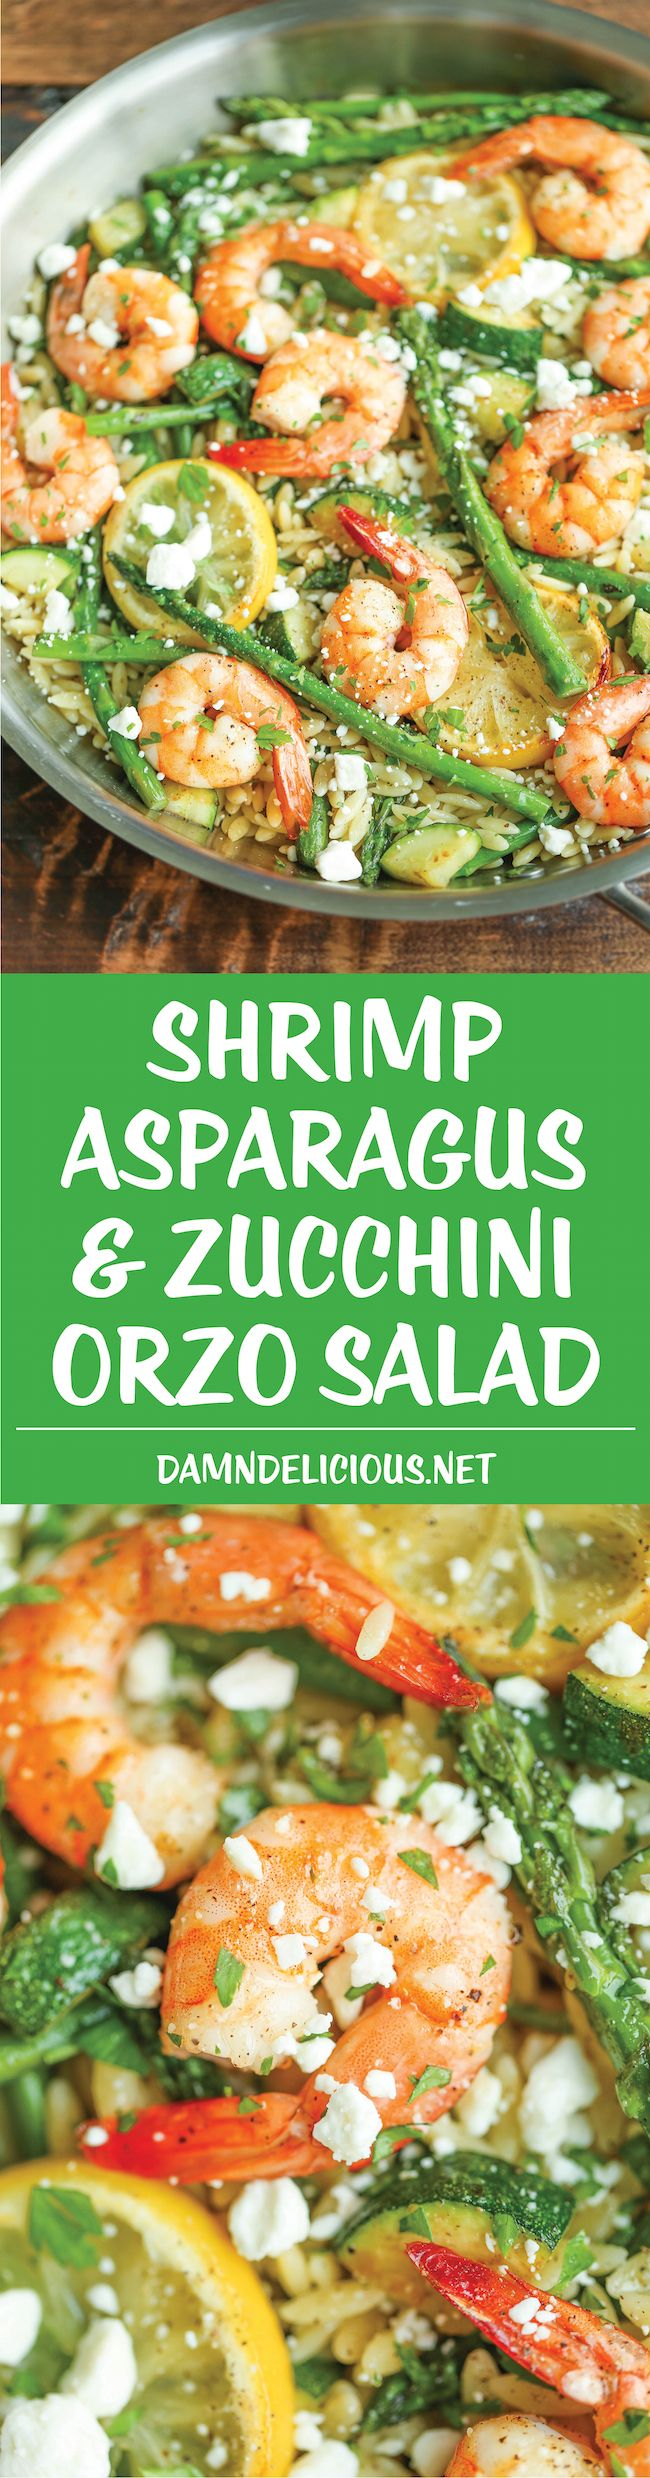 Shrimp, Asparagus and Zucchini Orzo Salad - Light, healthy and nutritious, tossed in the most amazing lemon Dijon vinaigrette!